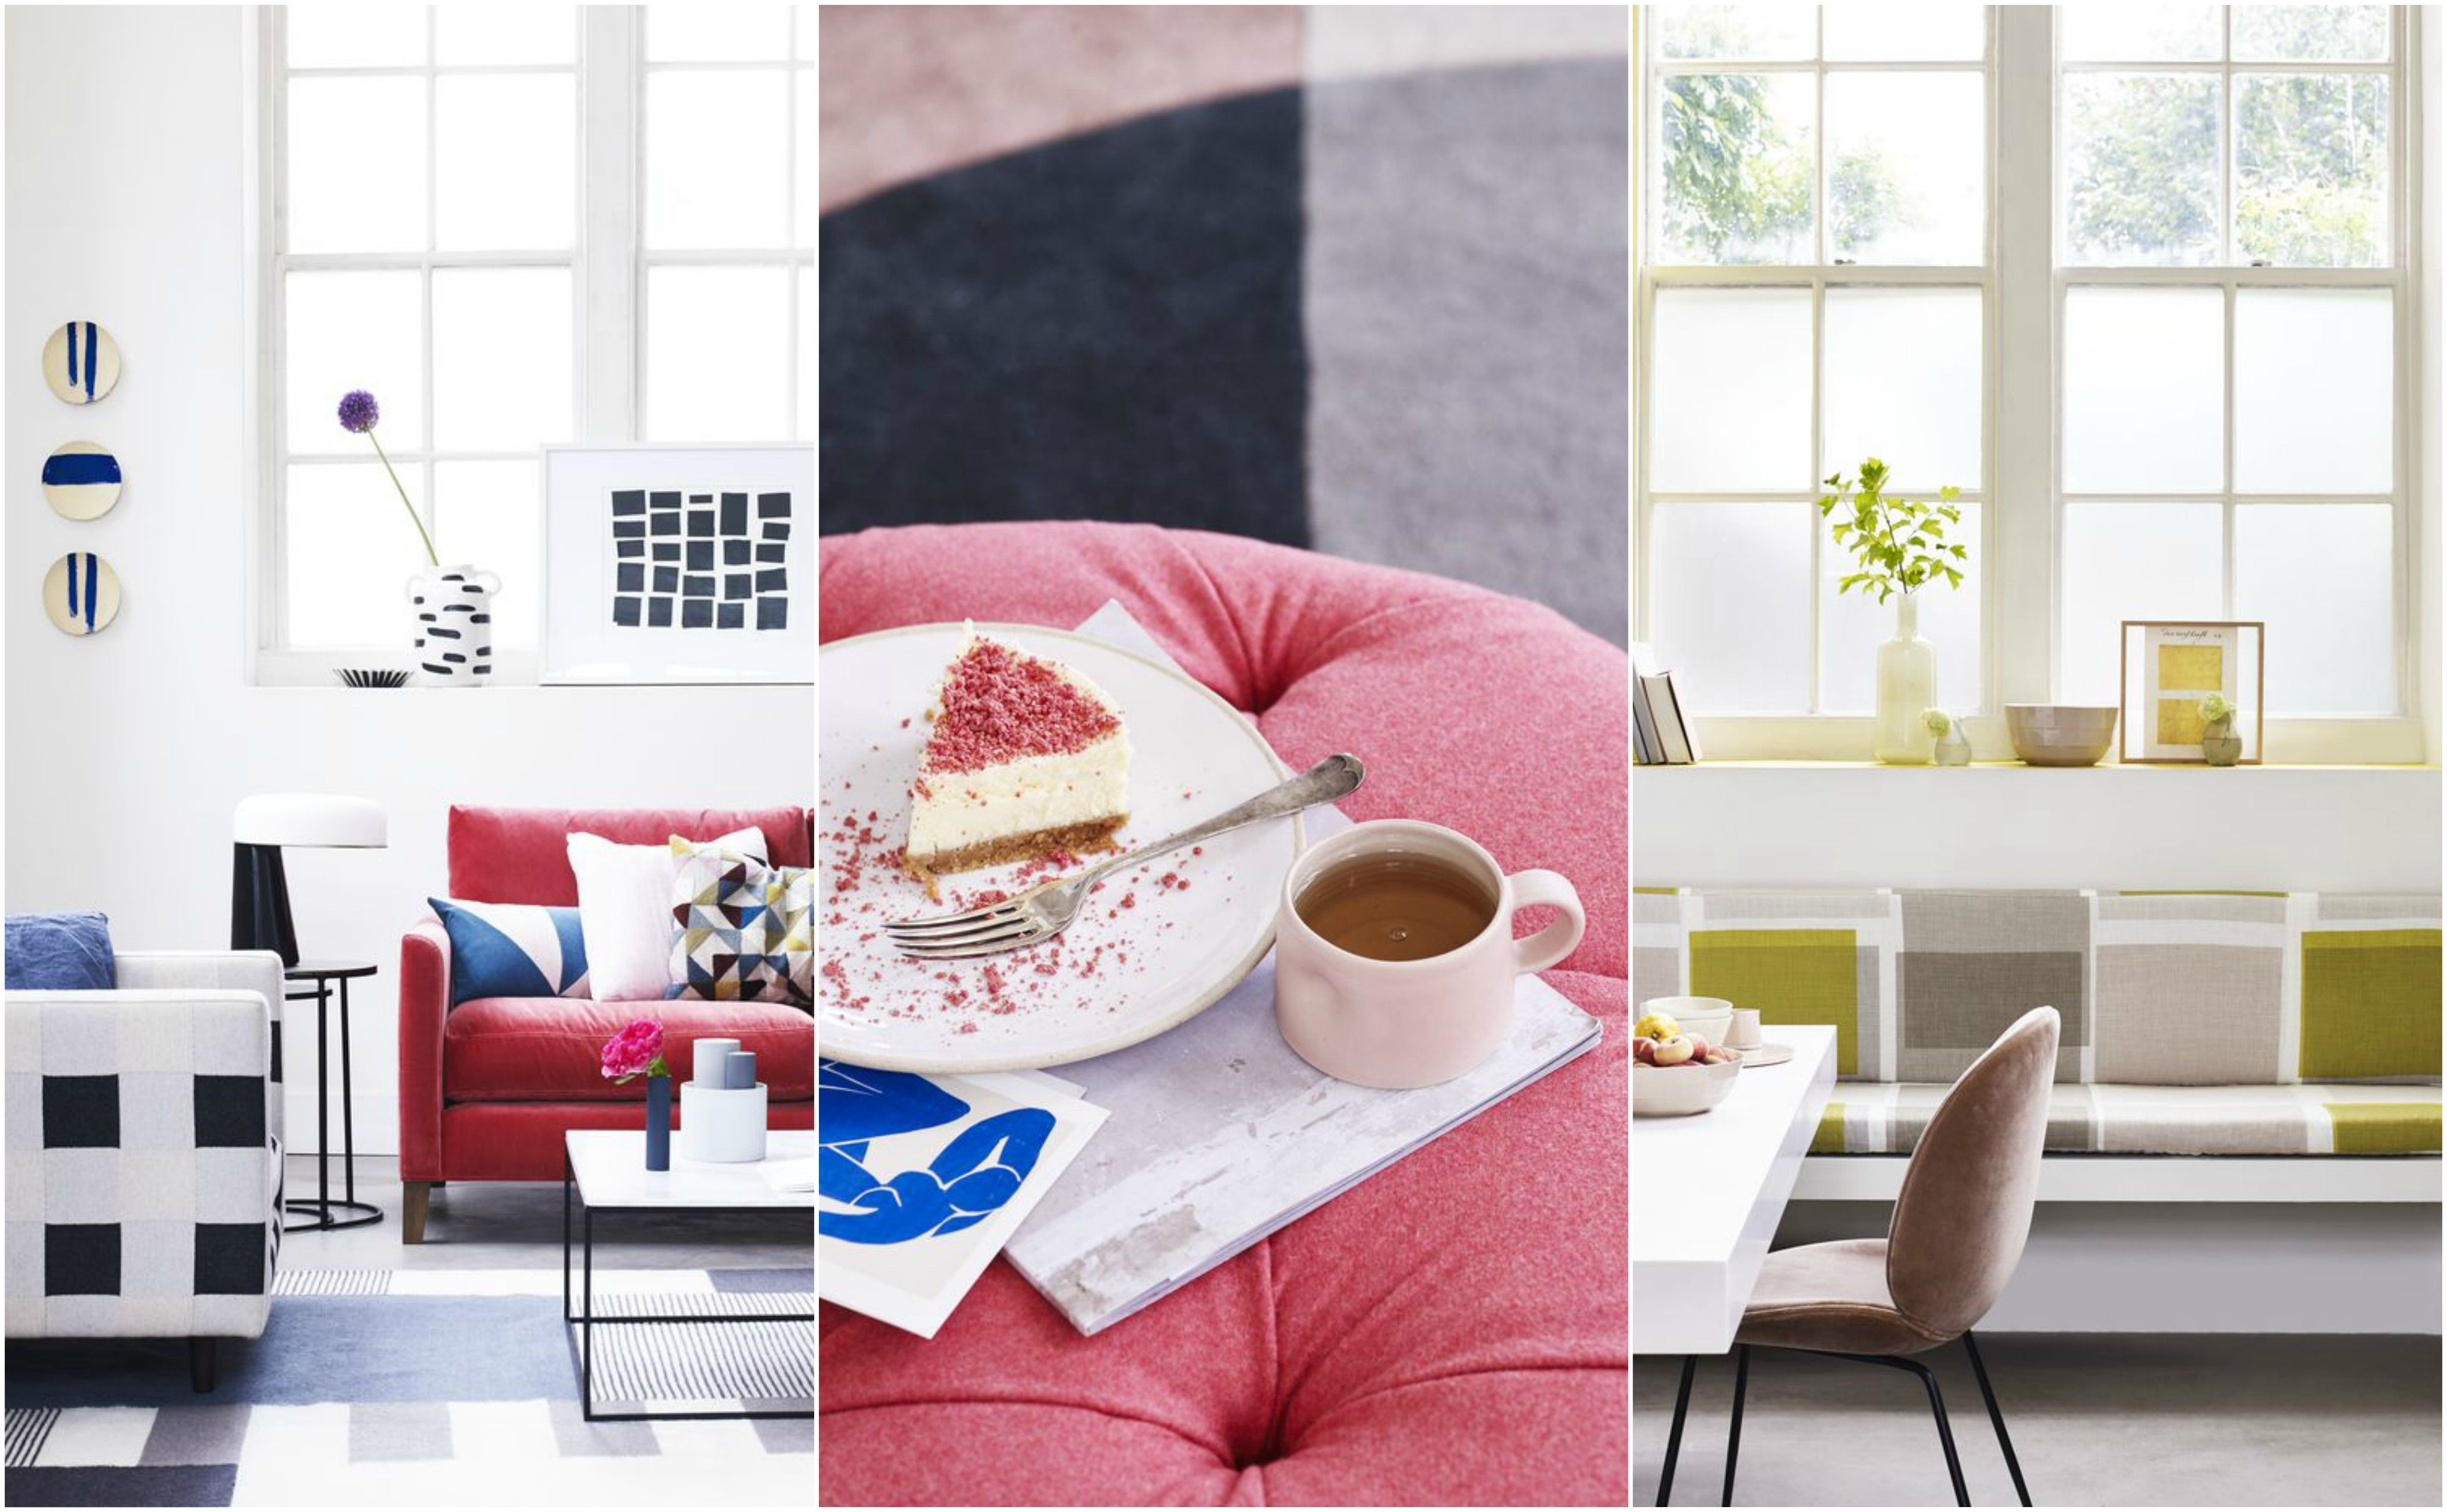 8 Ways To Use Geometric Patterns And Shapes With Colour In Your Home